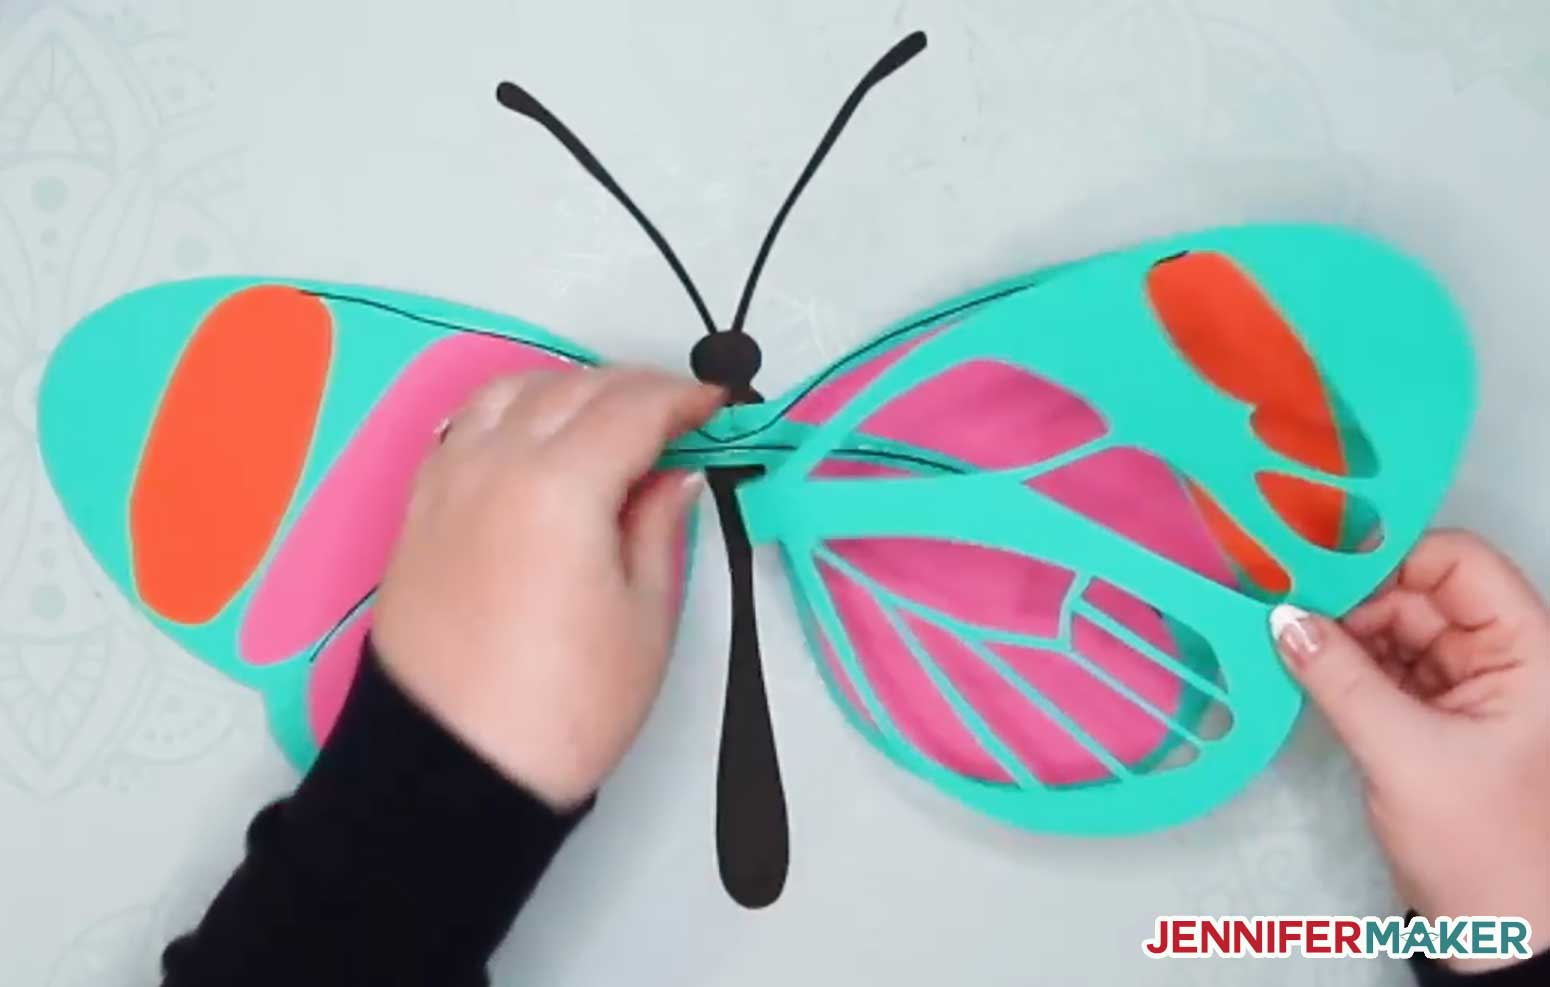 Place the back side of the wing on your giant paper butterfly